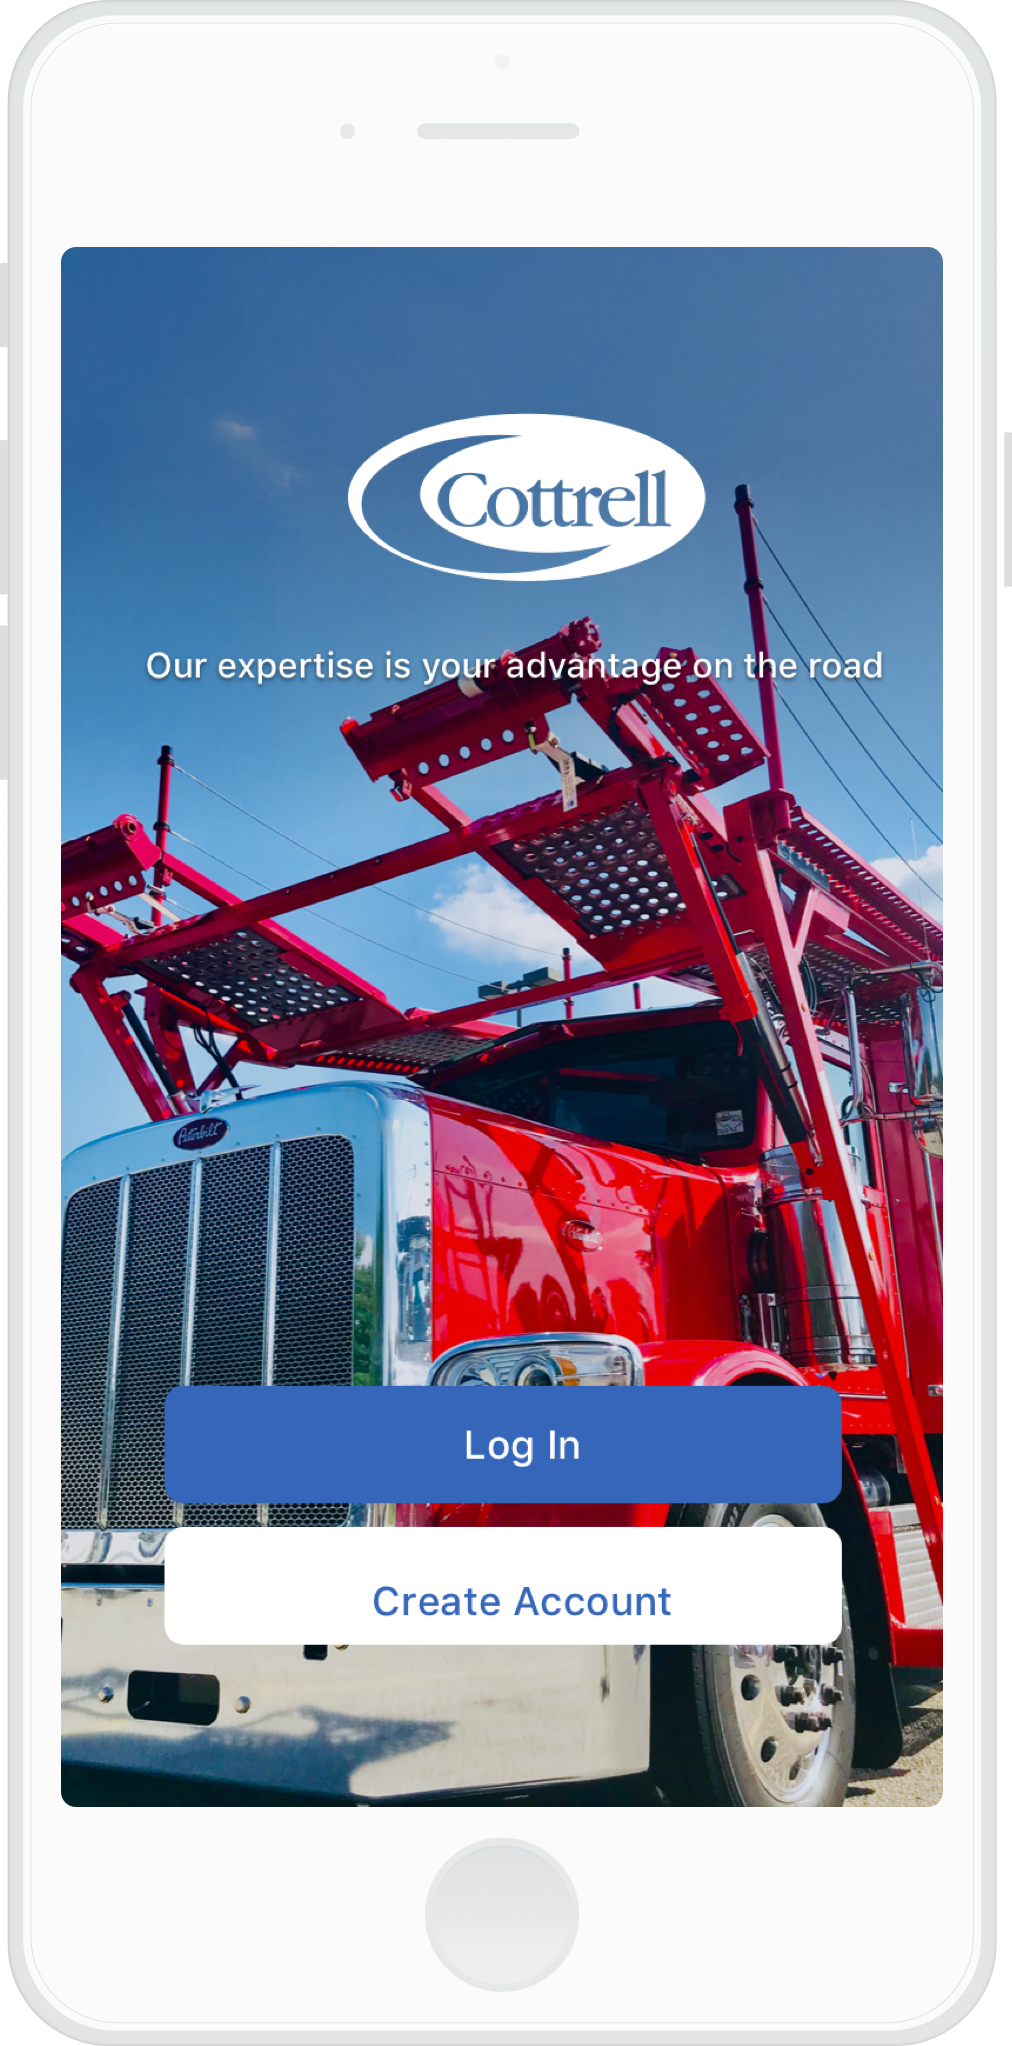 cottrell-trailers-mobile-application